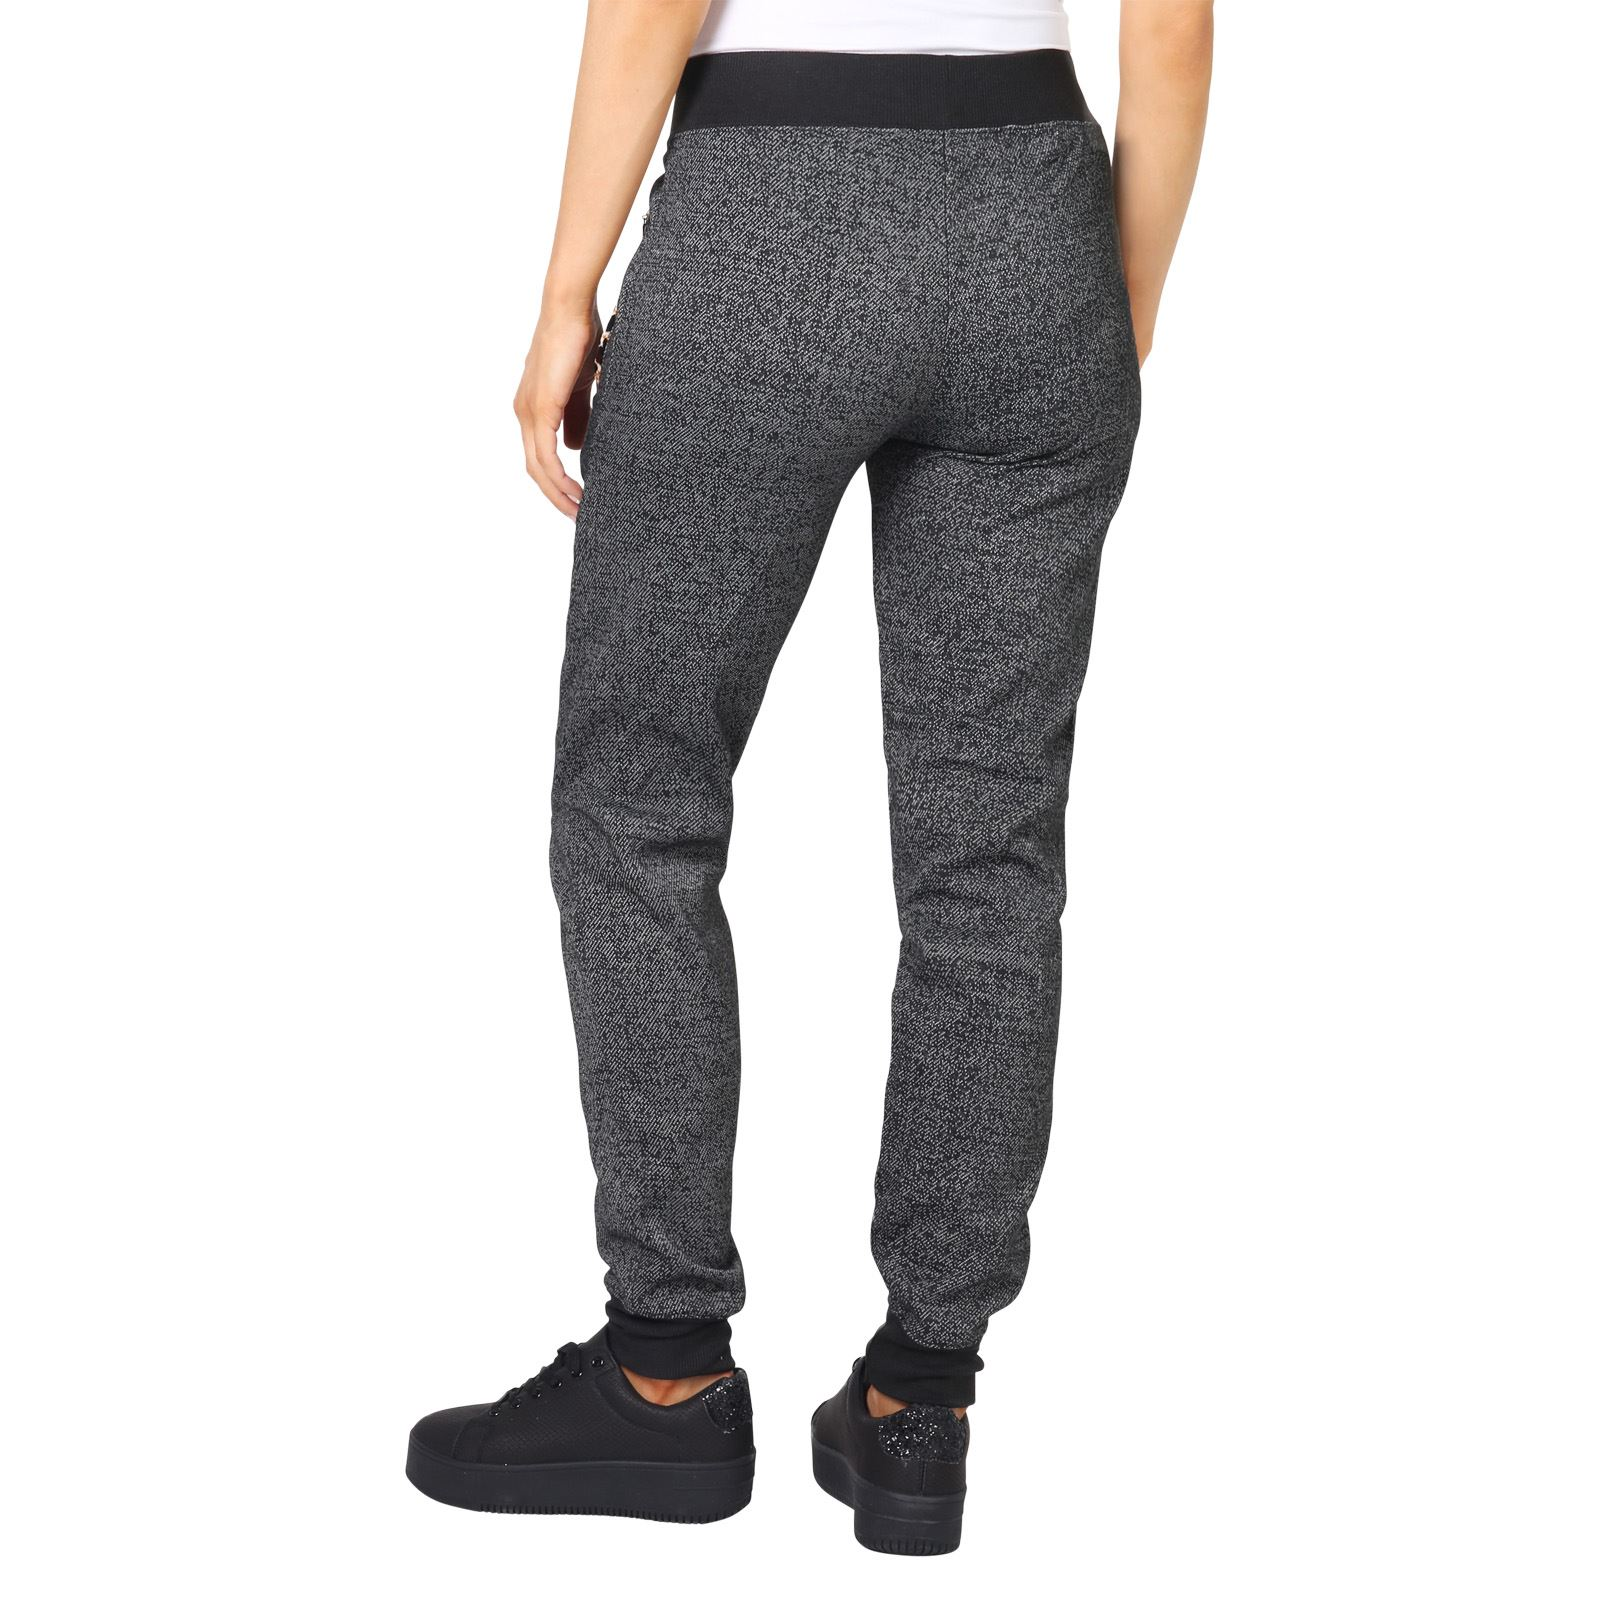 Shop for womens fleece sweat pants online at Target. Free shipping on purchases over $35 and save 5% every day with your Target REDcard.